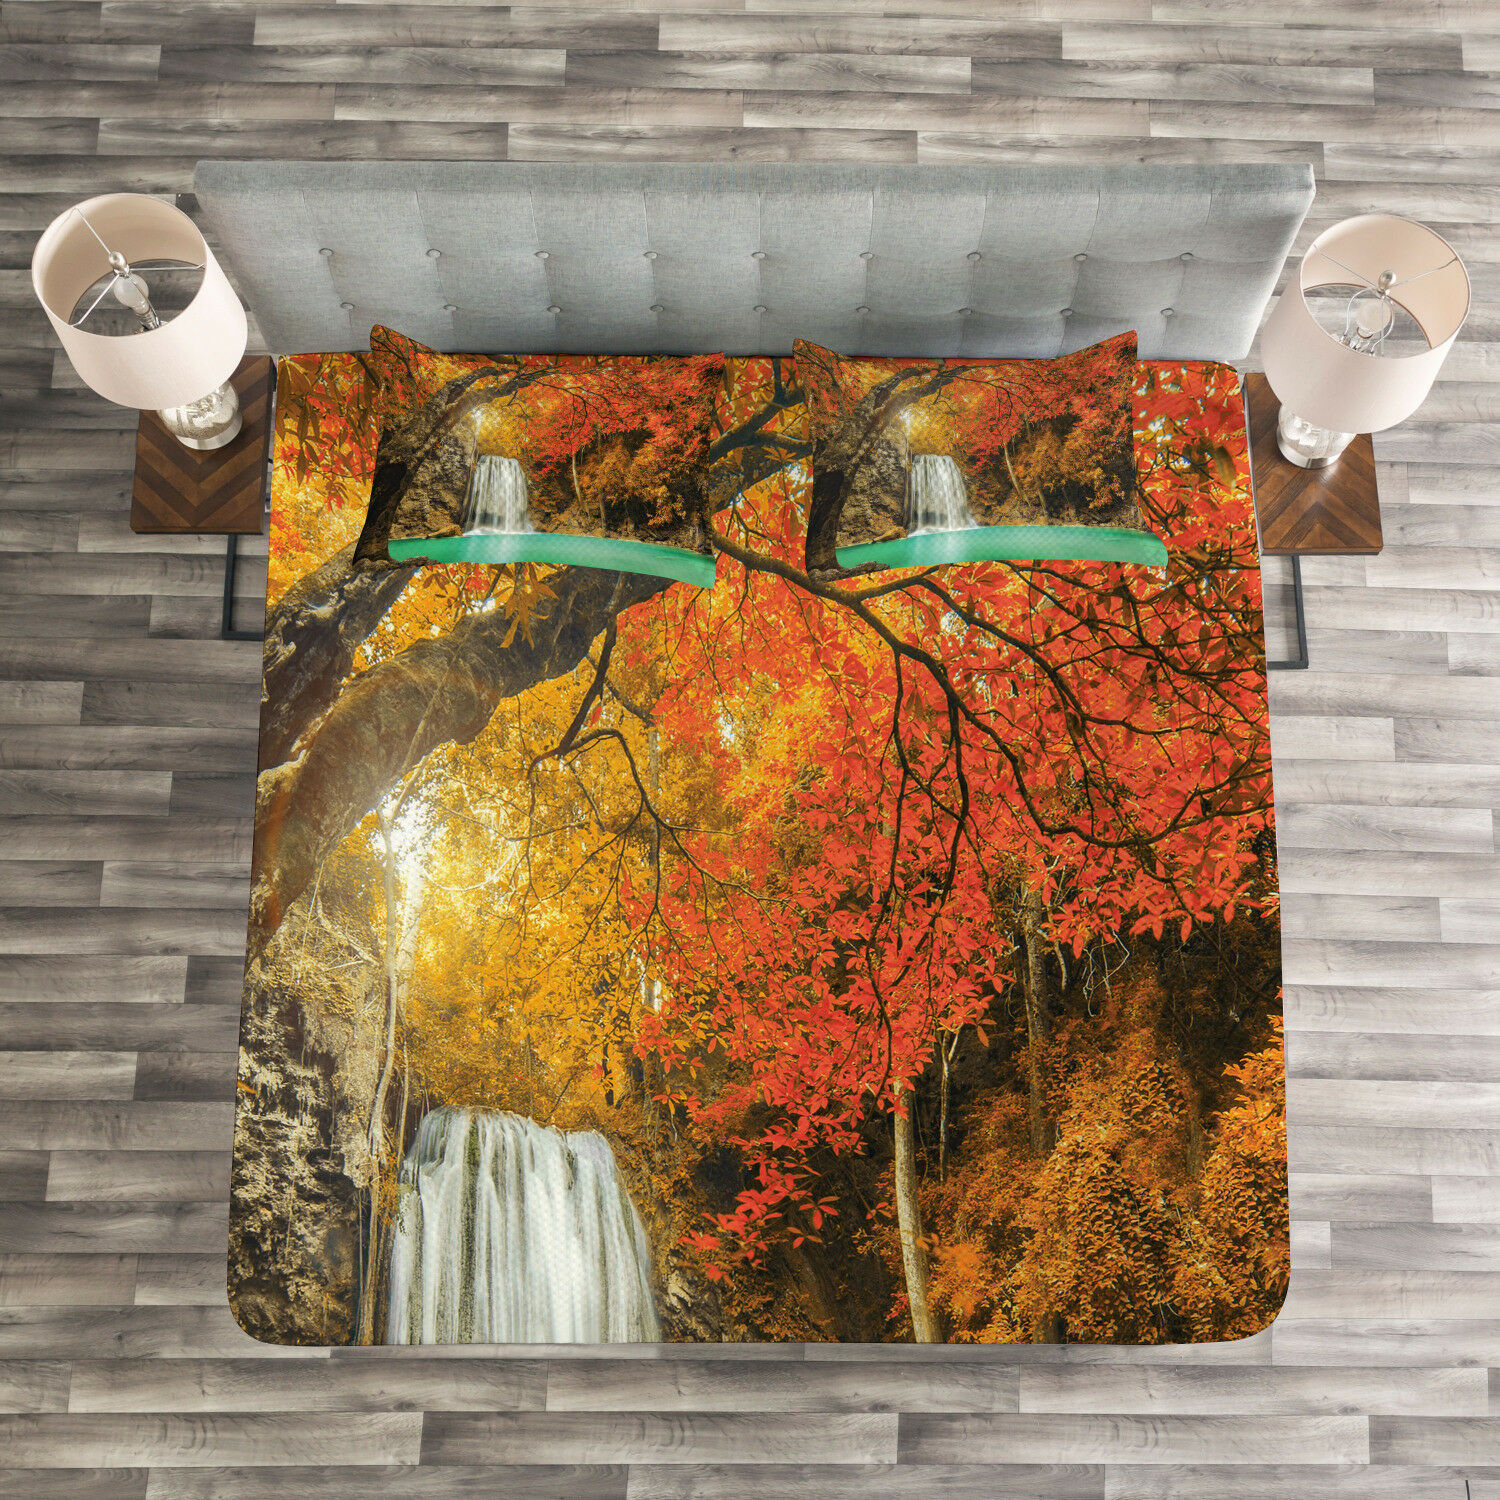 Waterfall Quilted Bedspread & Pillow Shams Set, Autumn Nature Forest Print